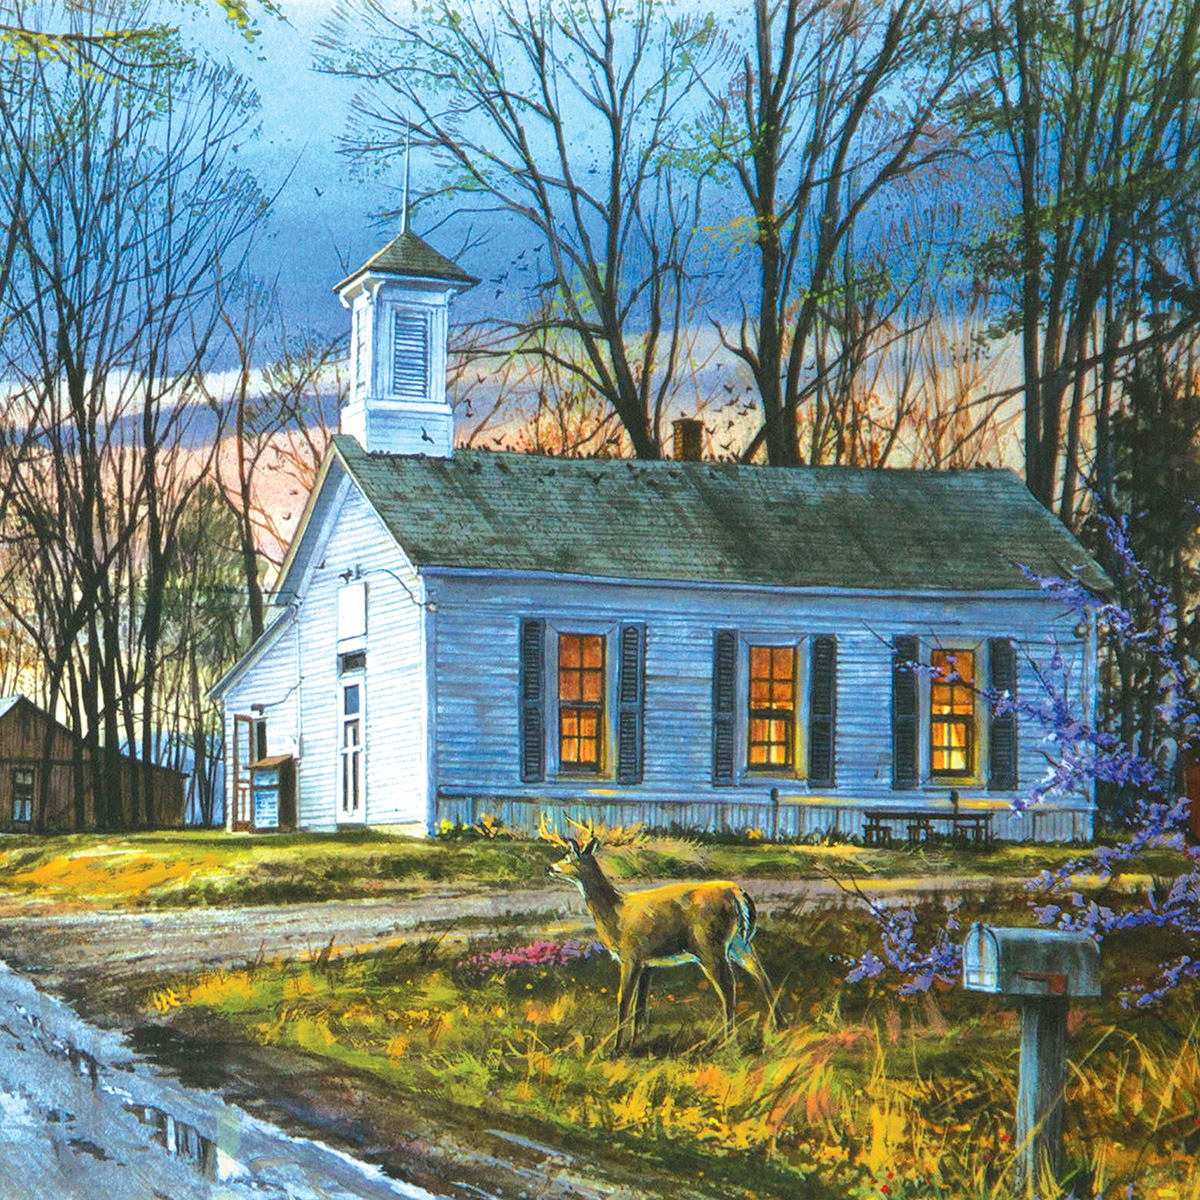 Evening Meeting - Scratch and Dent Churches Jigsaw Puzzle